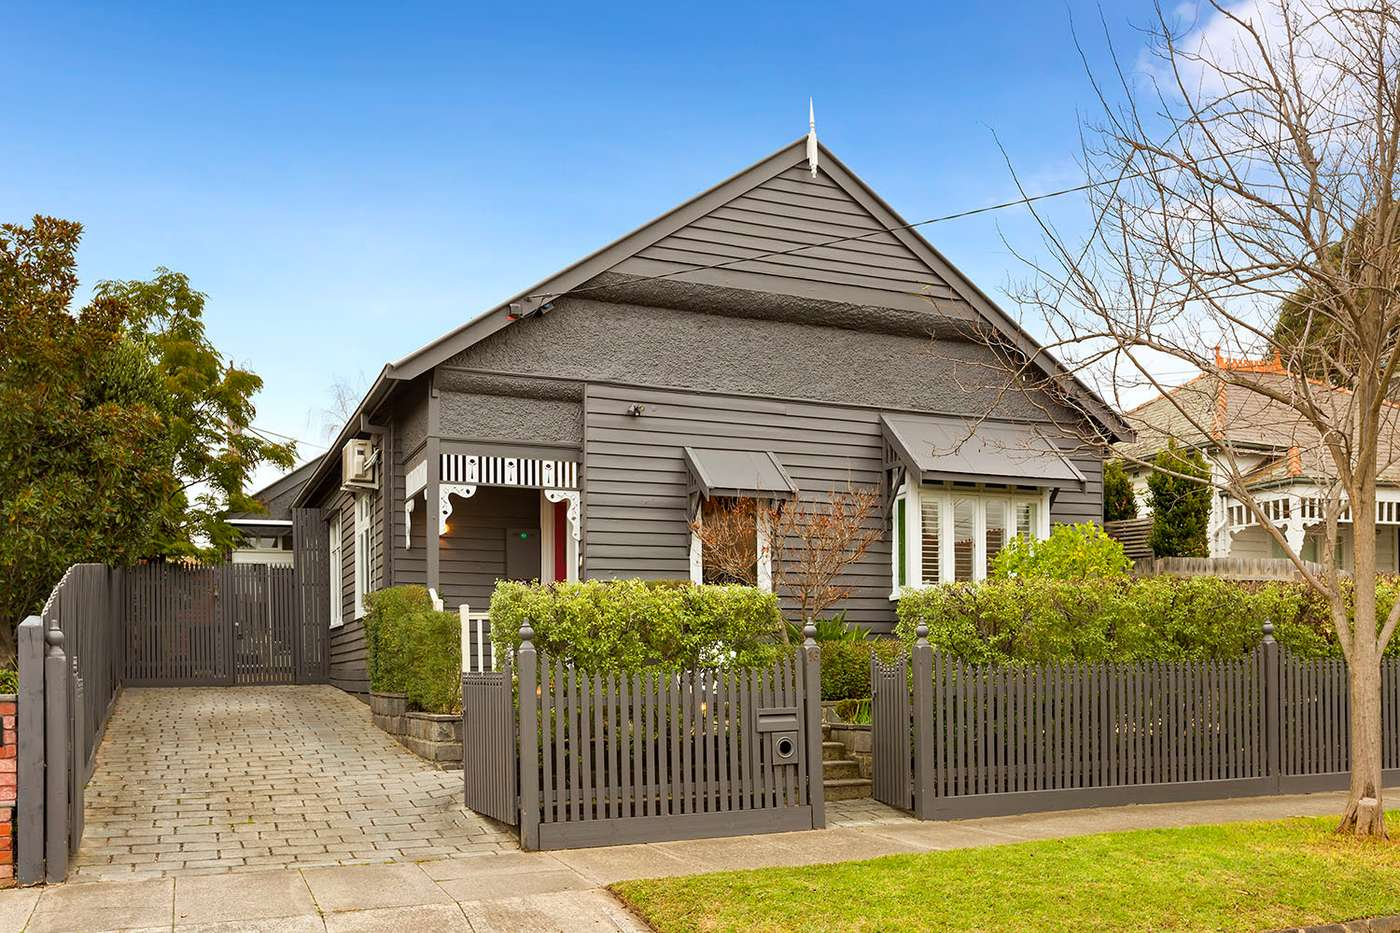 Main view of Homely house listing, 16 Allison Road, Elsternwick, VIC 3185